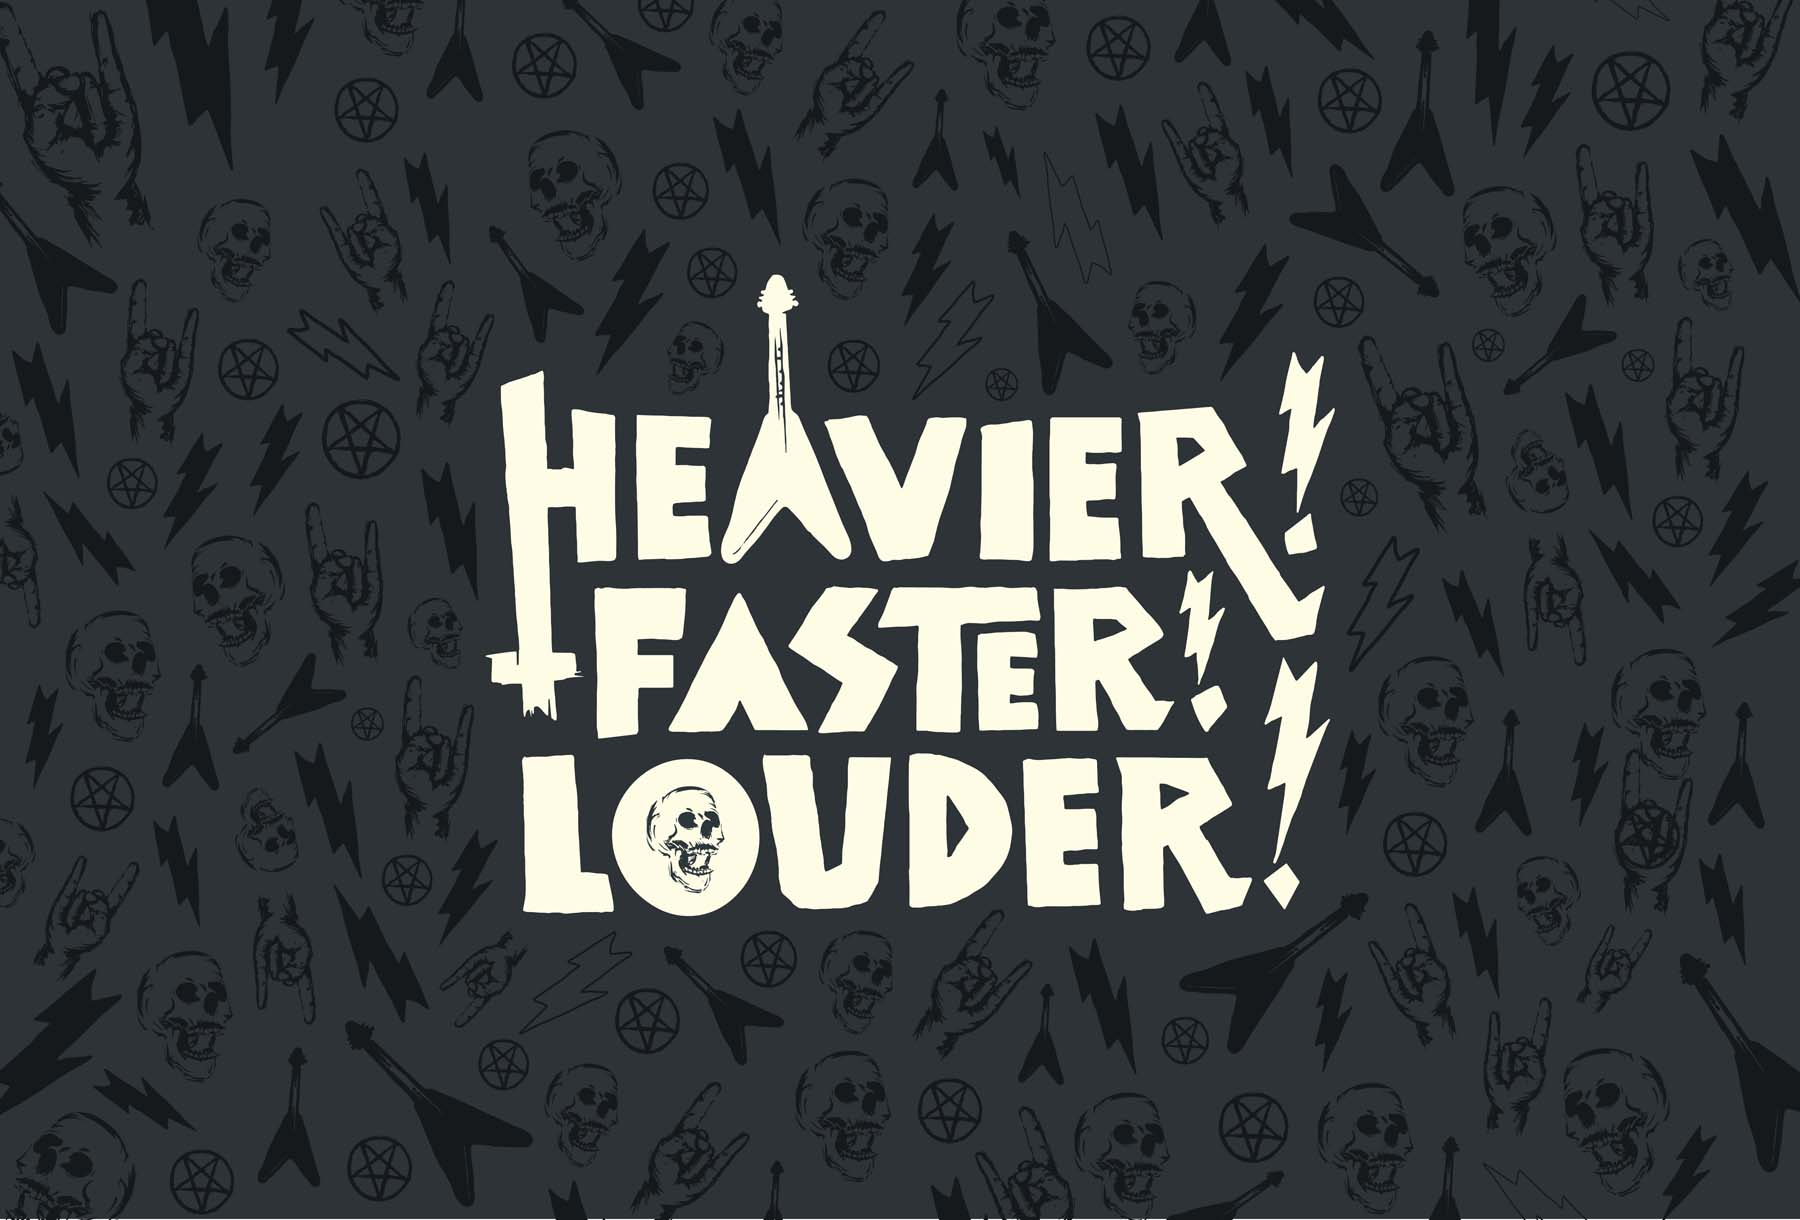 heavier faster louder postcard with words on a black background